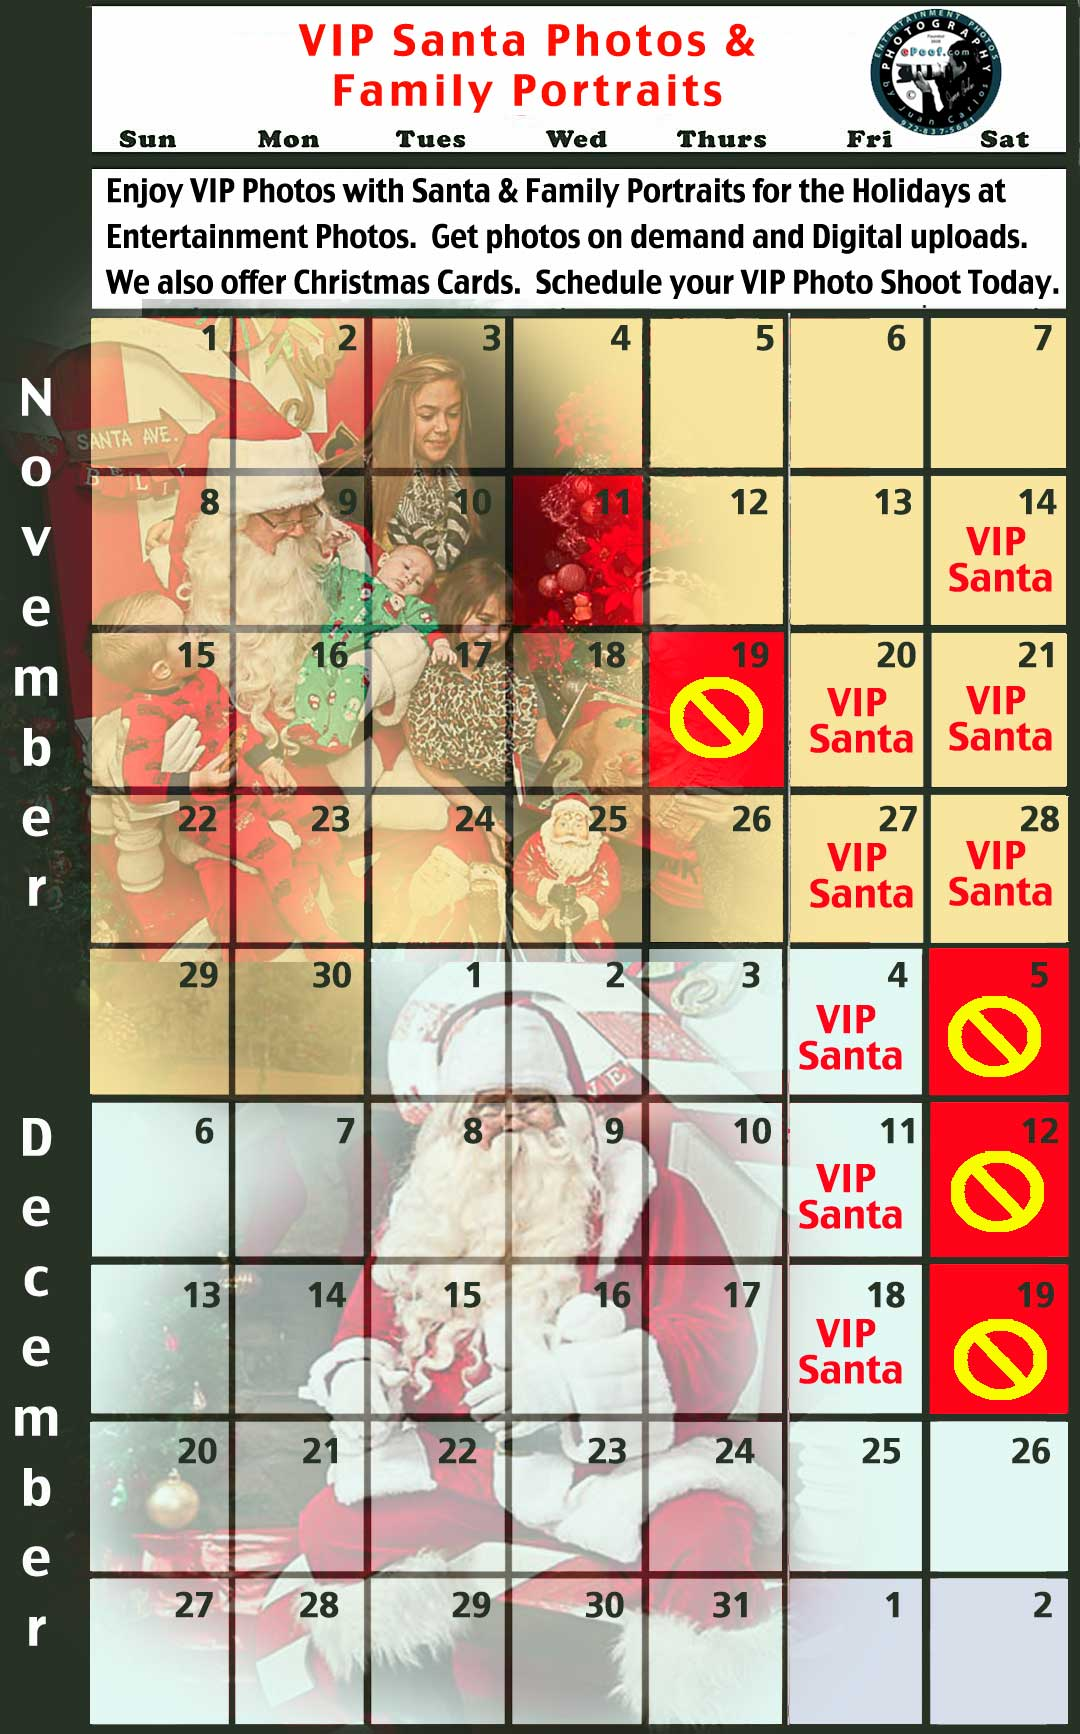 2015 VIP Santa Photos & Family Portraits by Juan Carlos at Entertainment Photos and VIPSantaPhotos